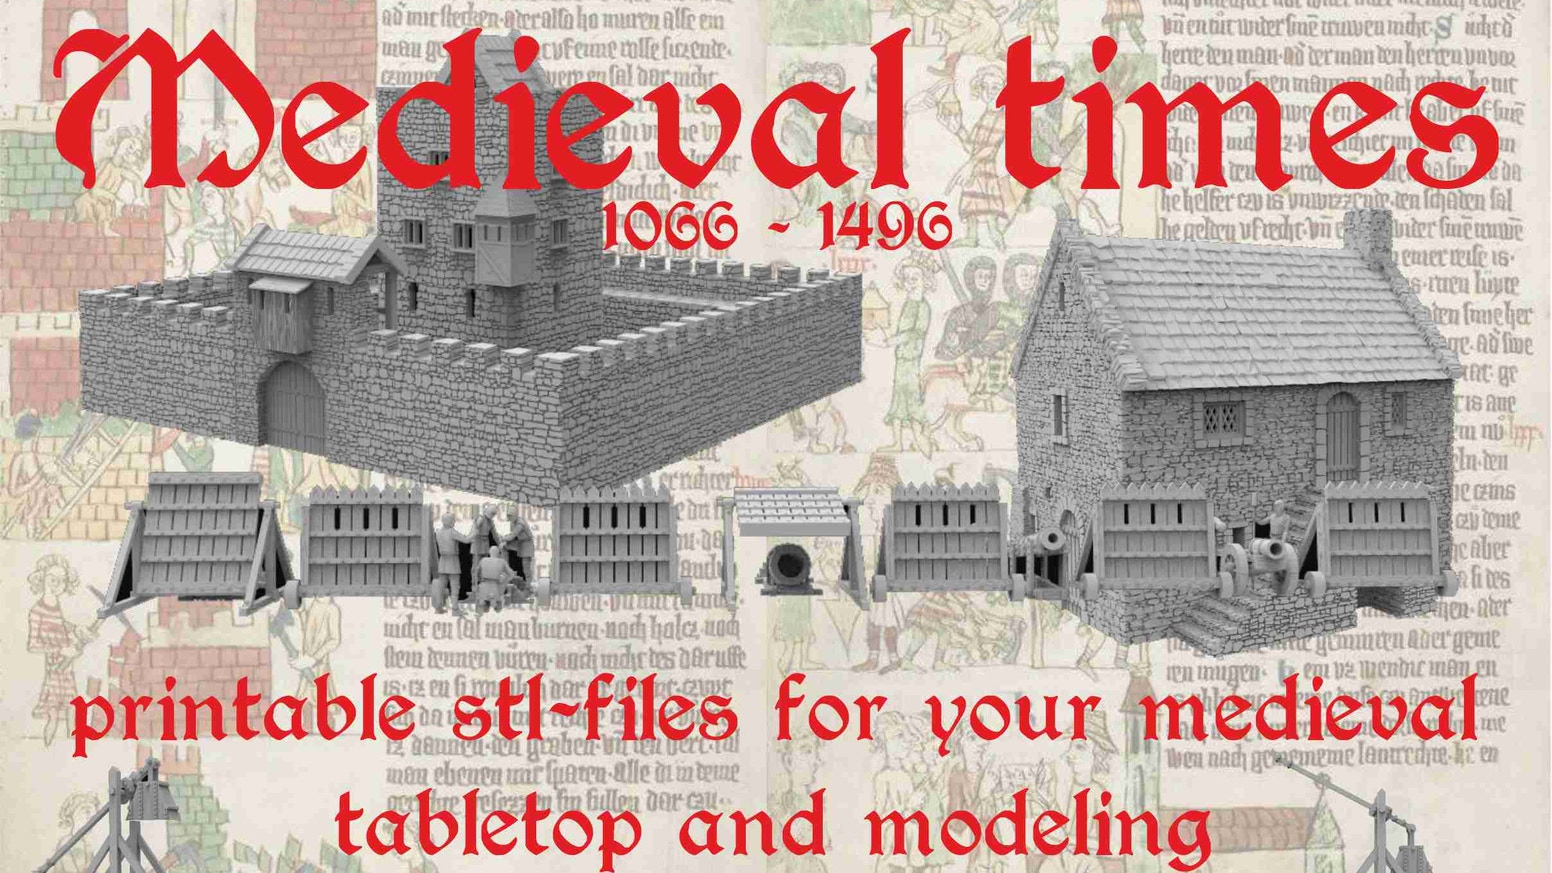 Medieval, 3d printable terrain for tabletop and modeling